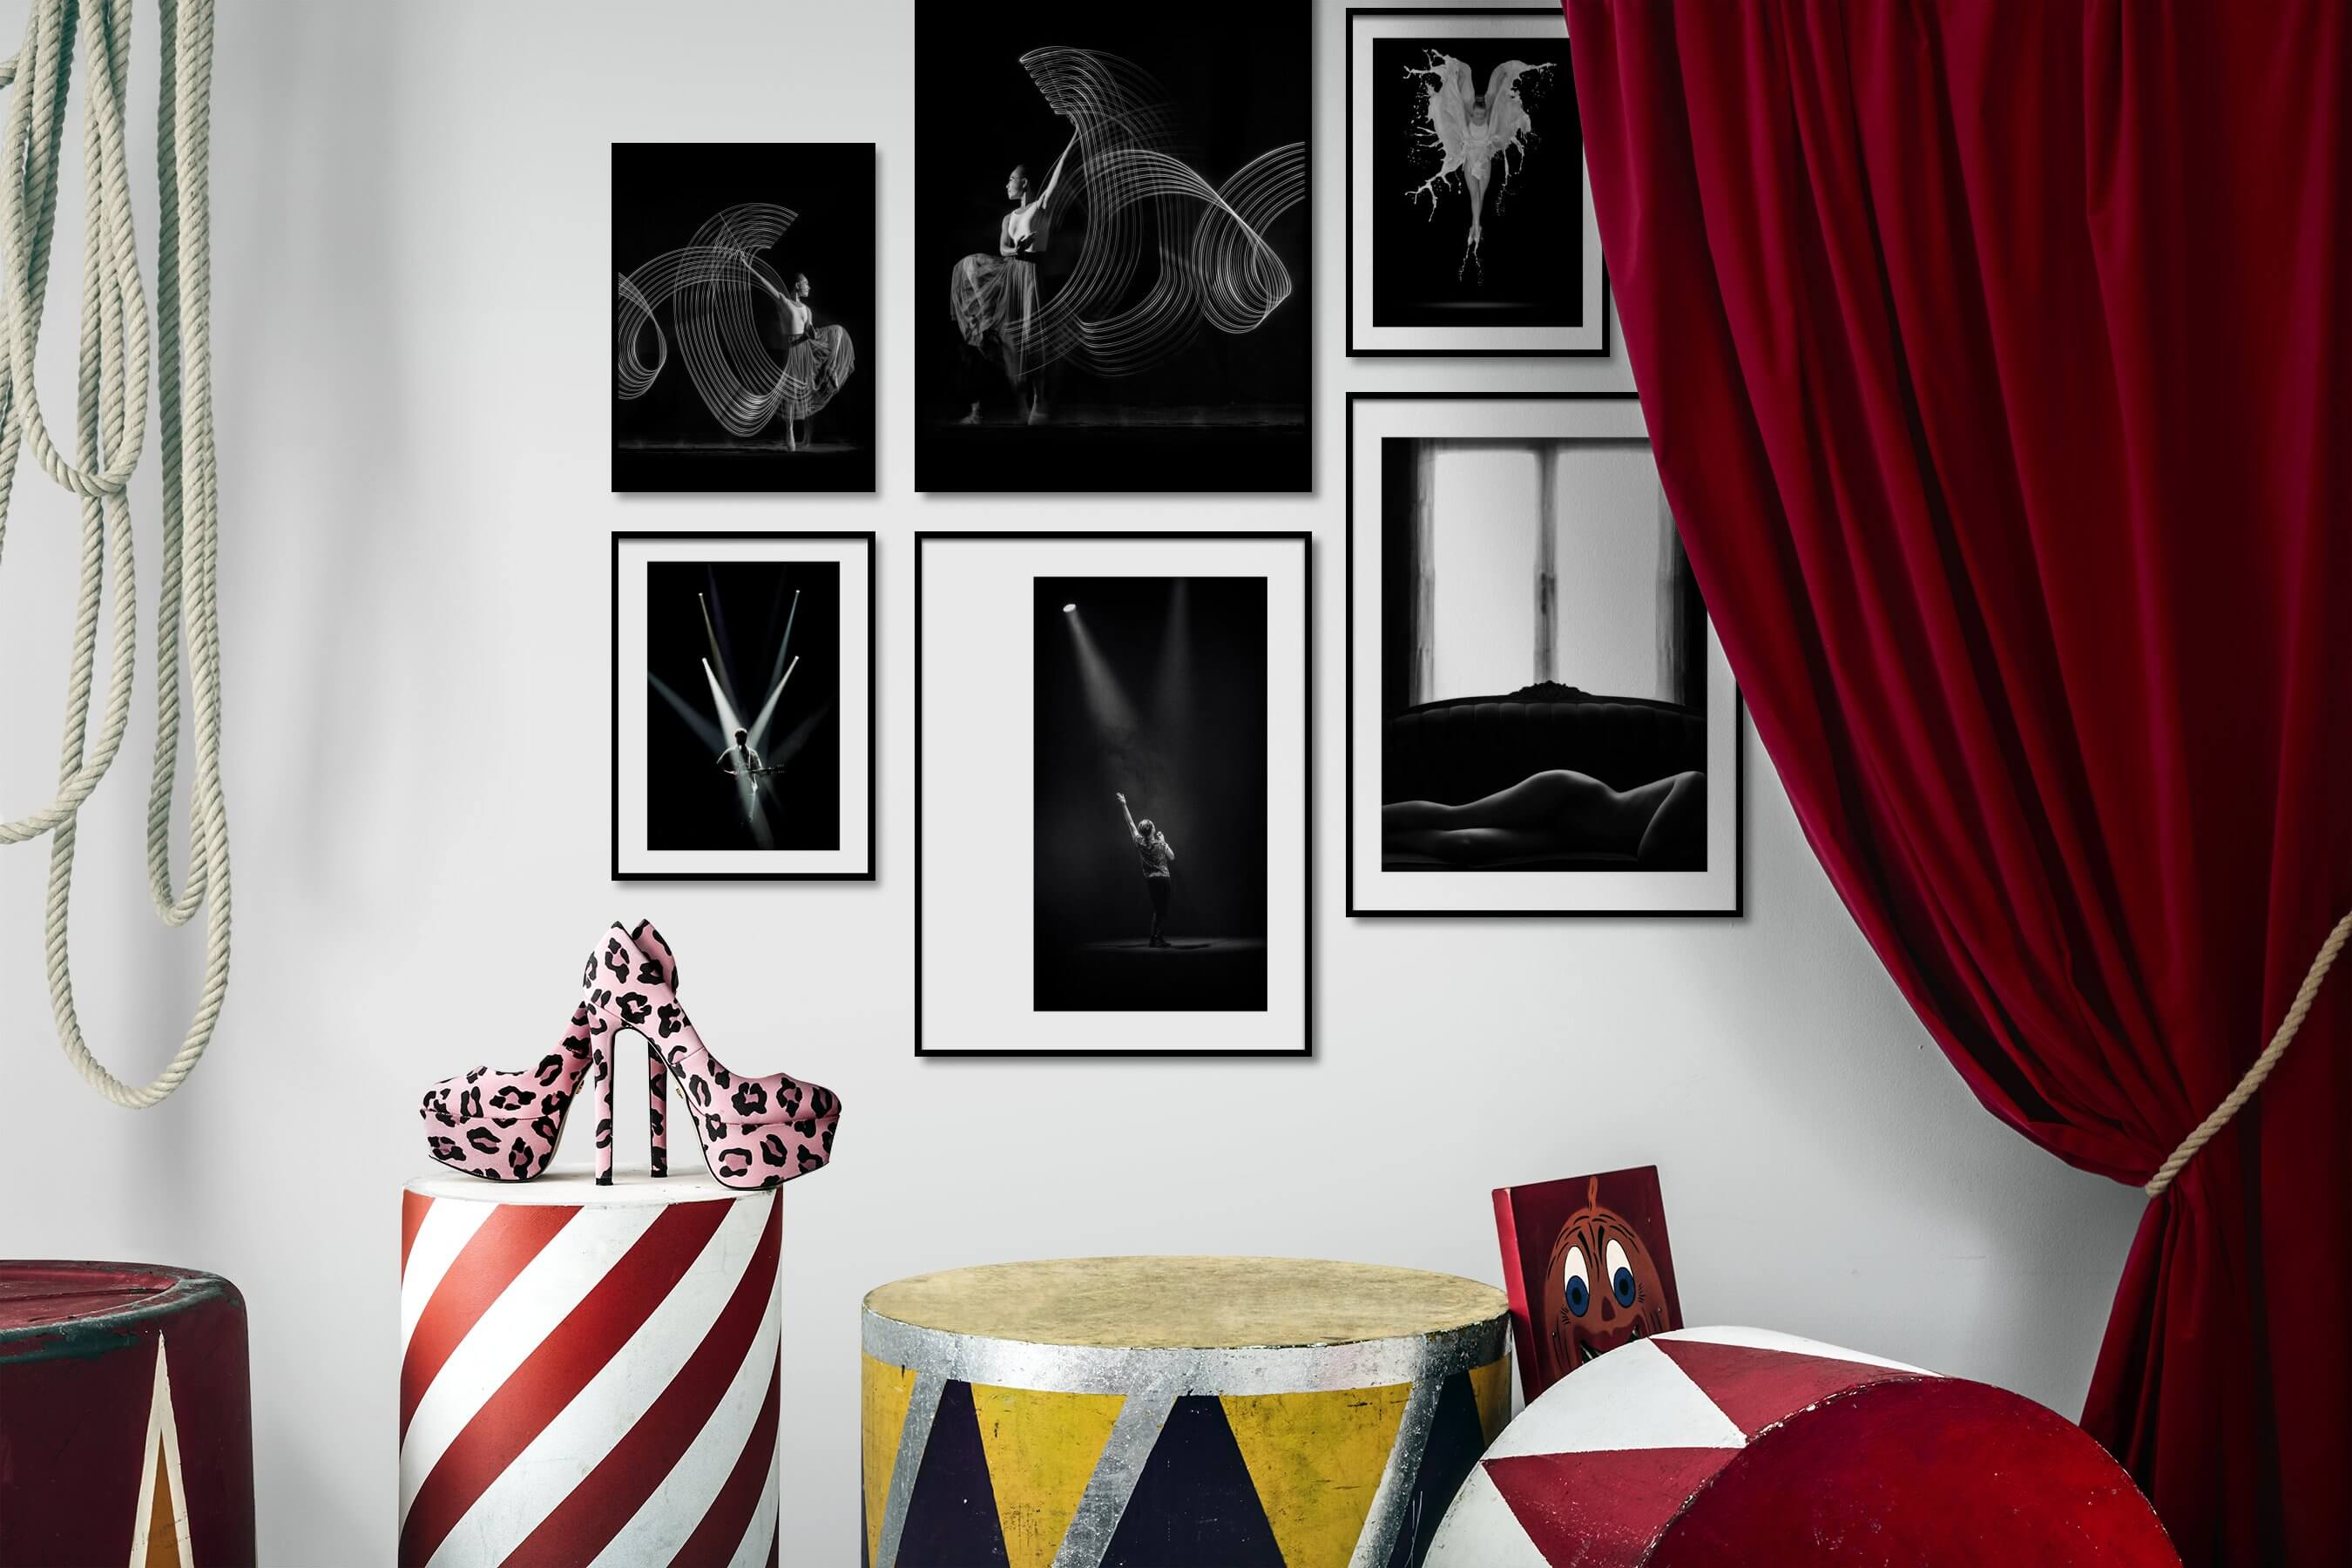 Gallery wall idea with six framed pictures arranged on a wall depicting Black & White, Dark Tones, For the Moderate, Fashion & Beauty, and For the Minimalist